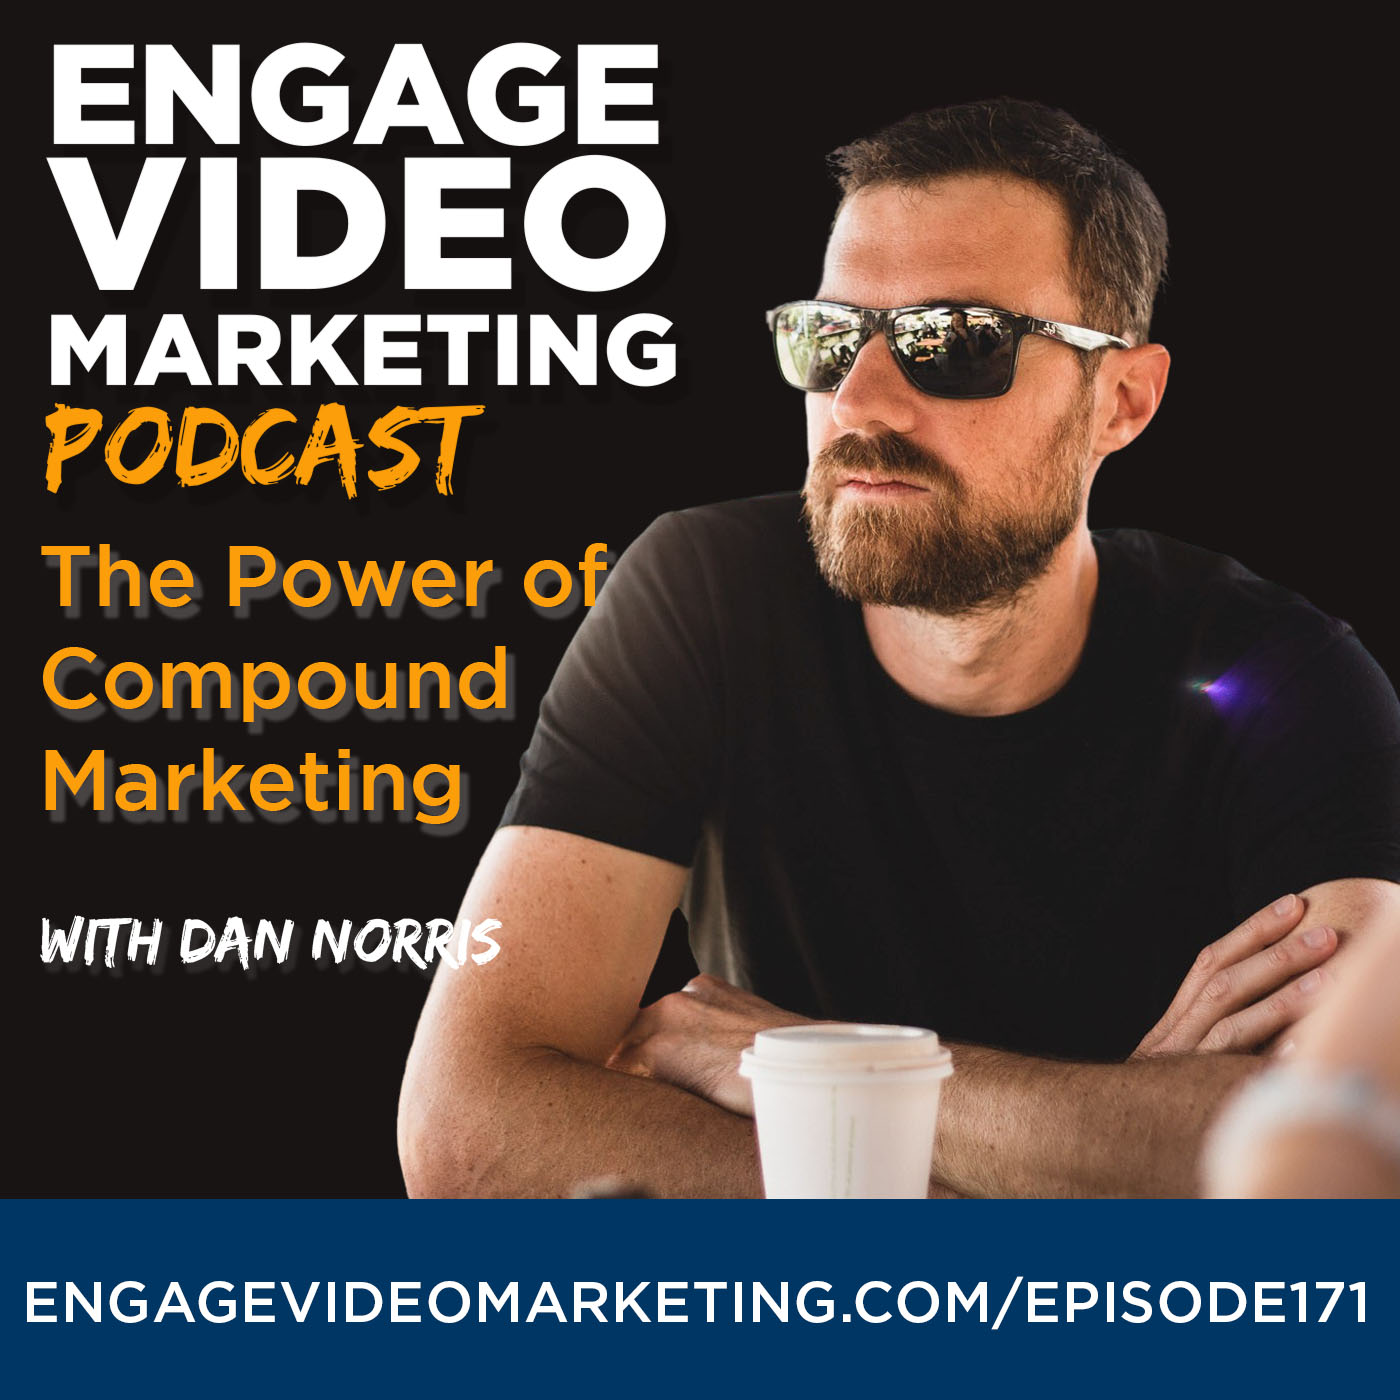 The Power of Compound Marketing with Dan Norris